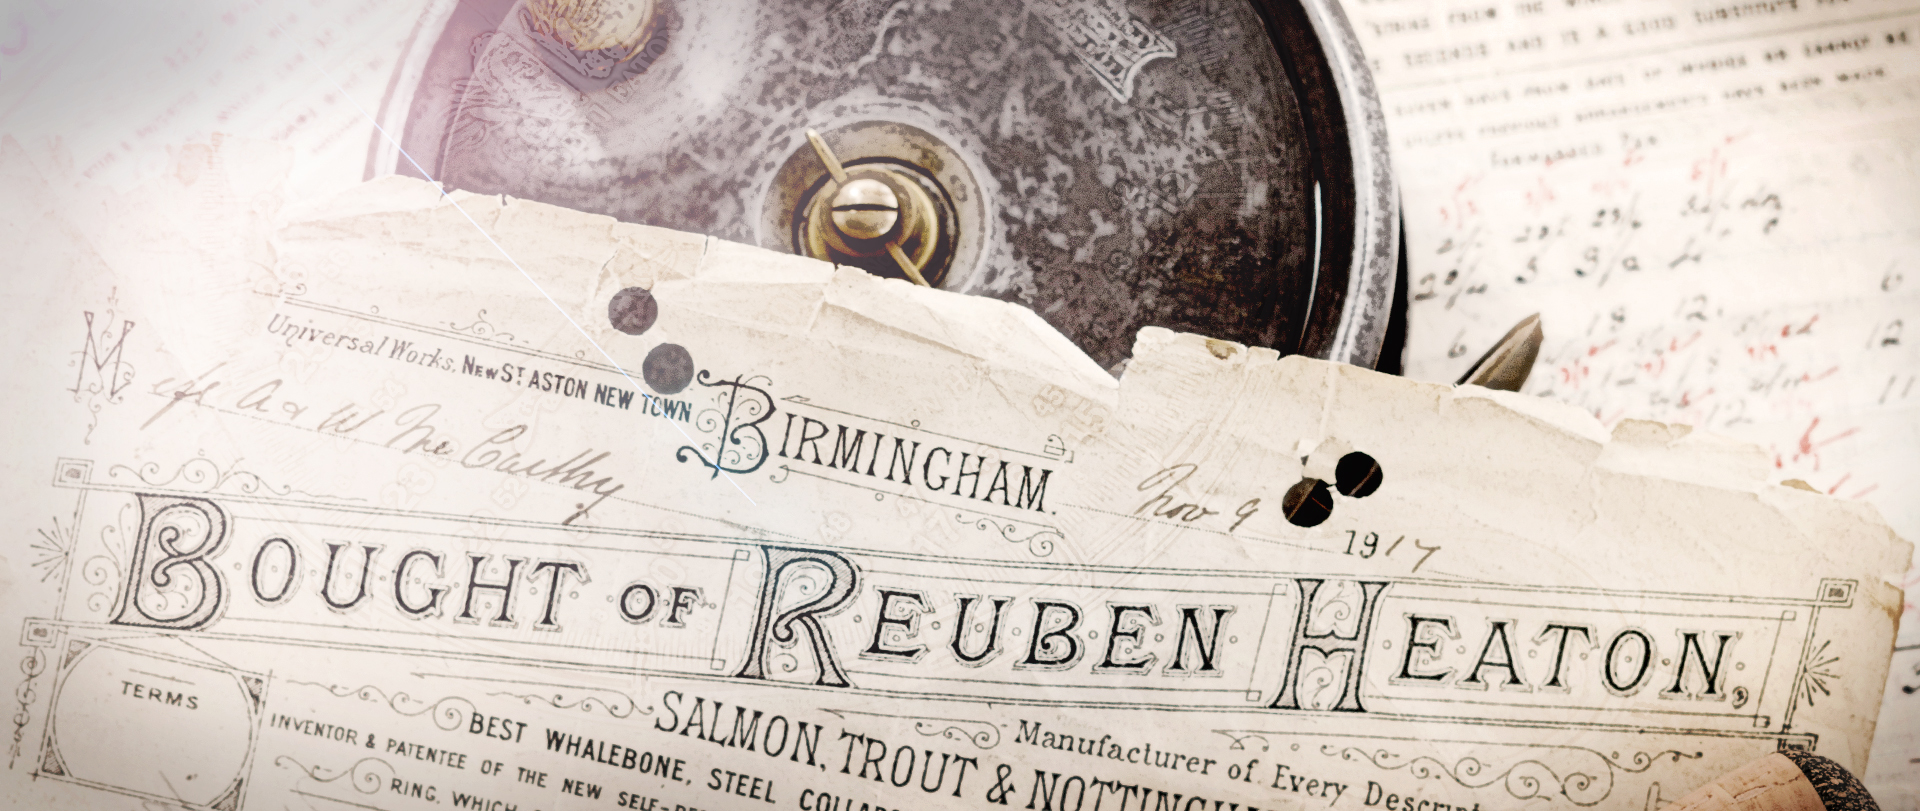 Reuben Heaton since 1857